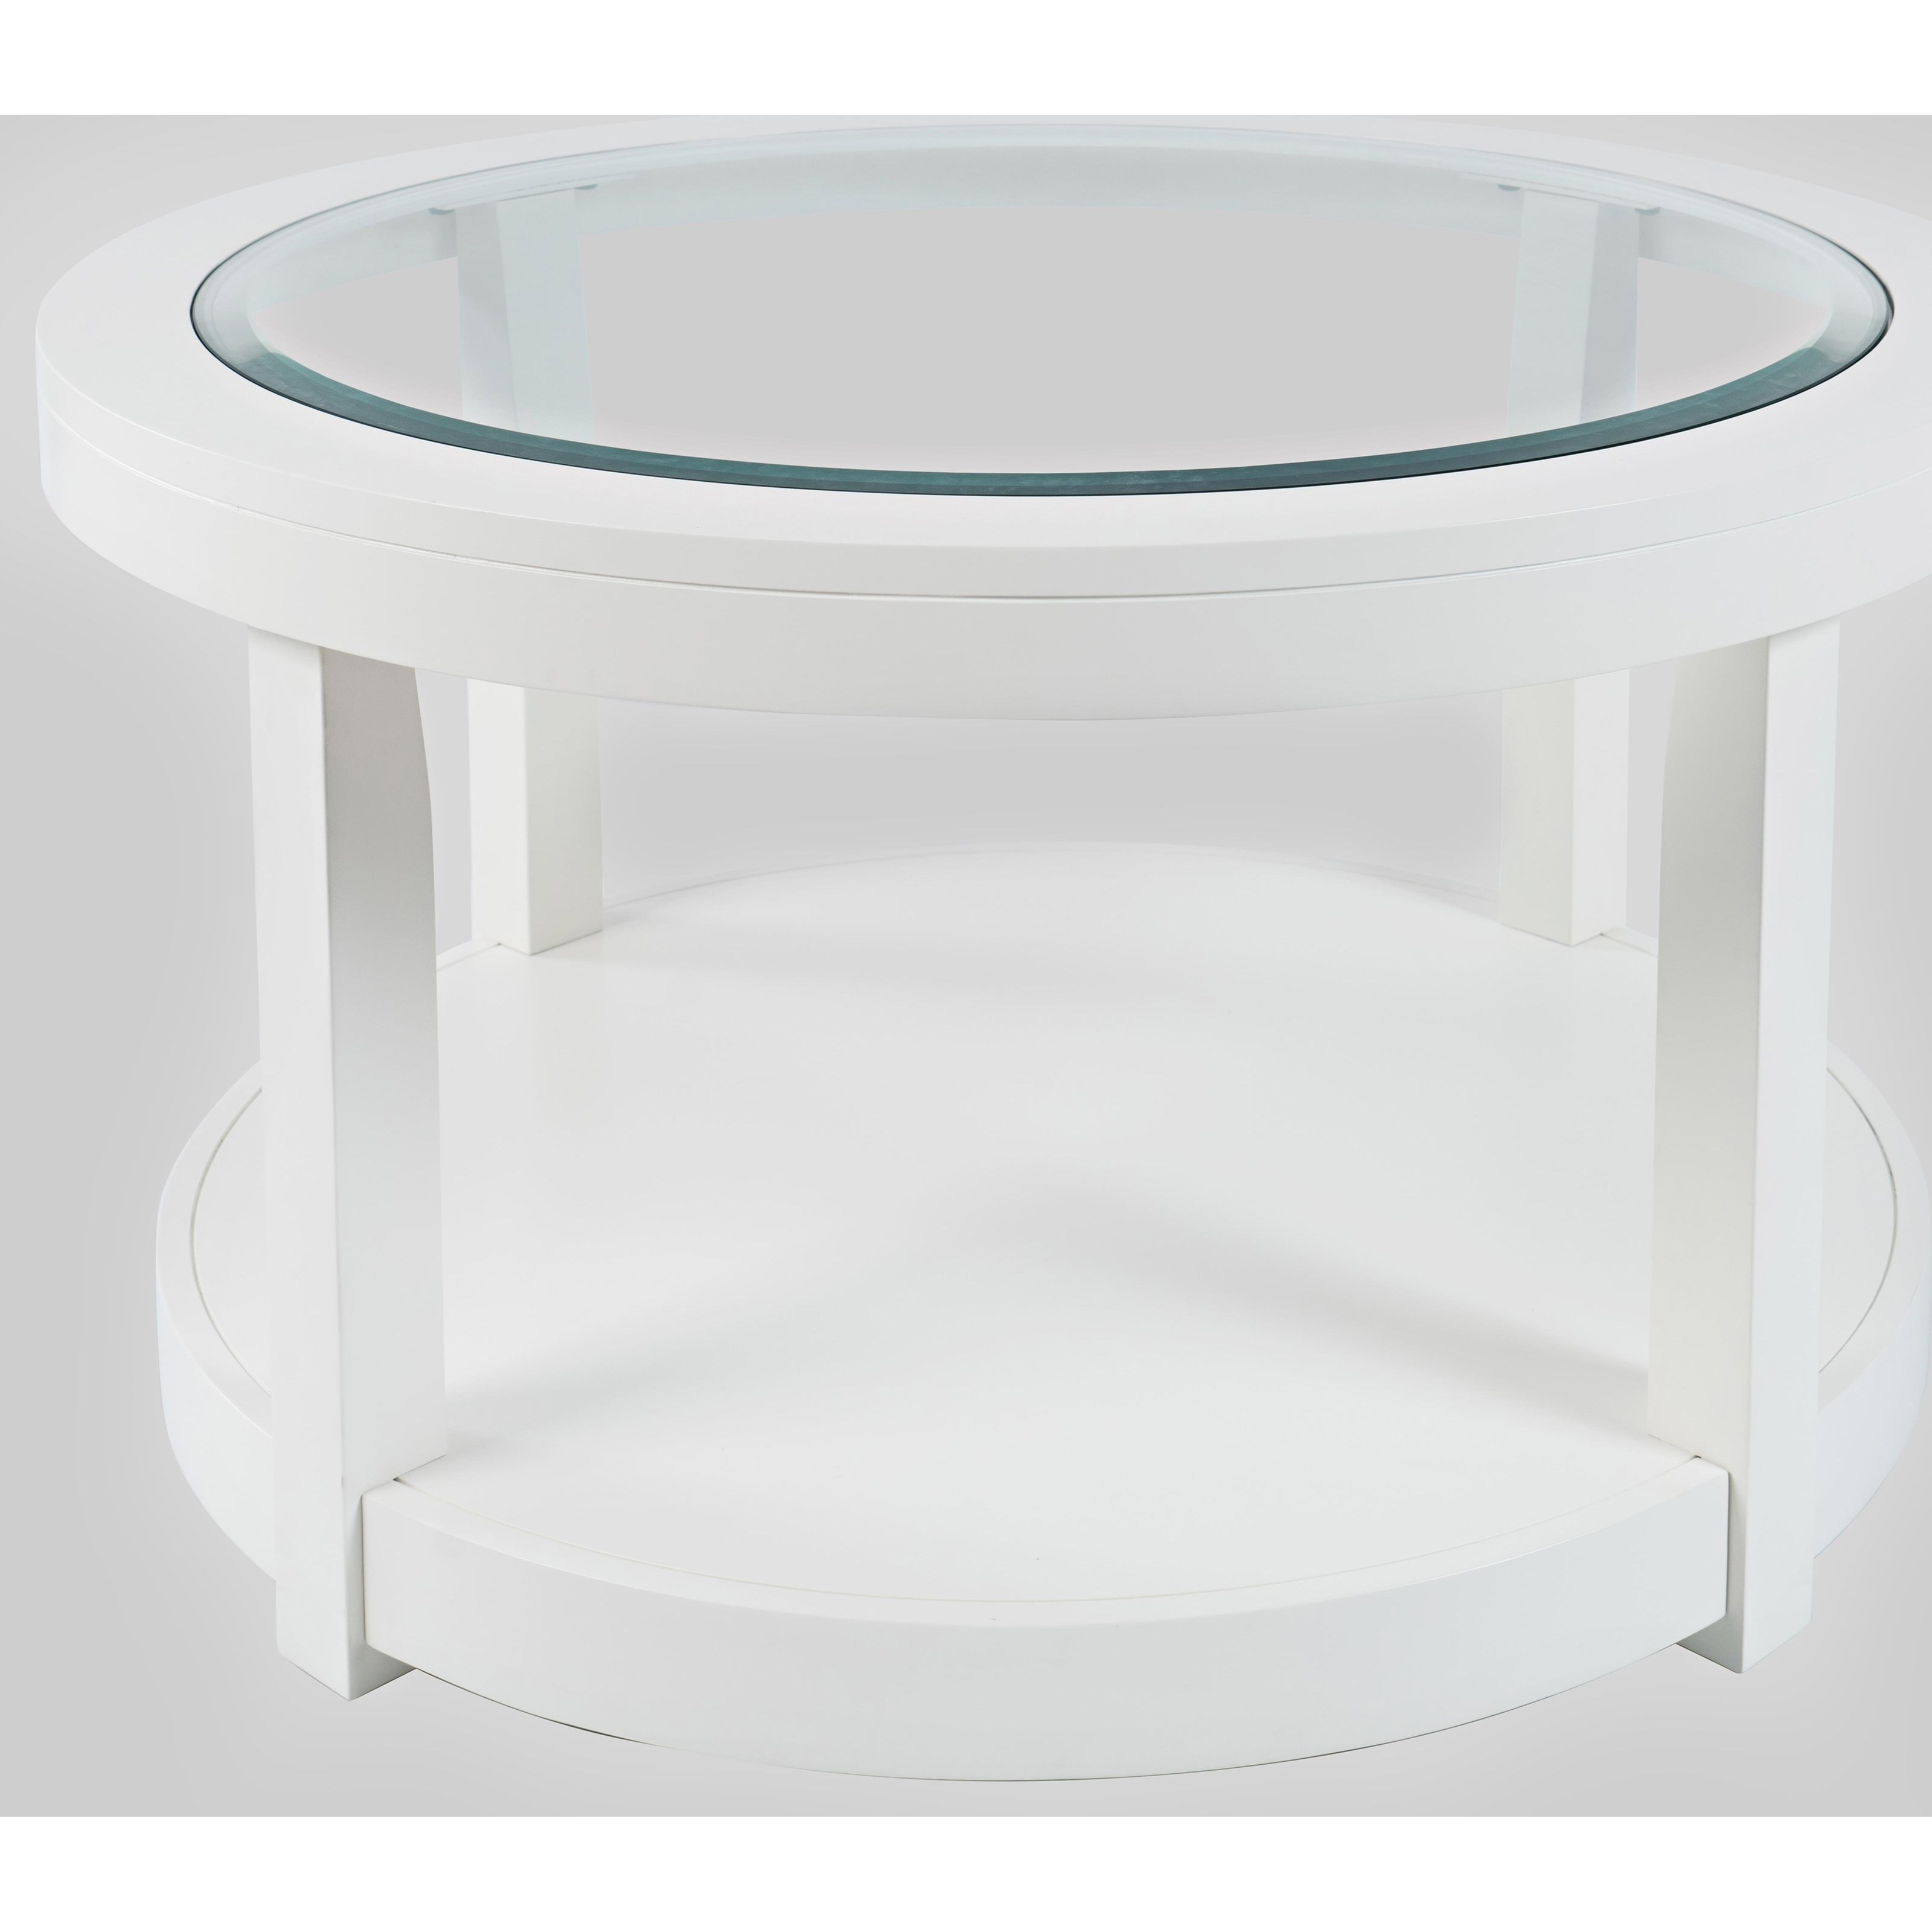 Urban Icon Round Castered Cocktail Table by Jofran at Jofran